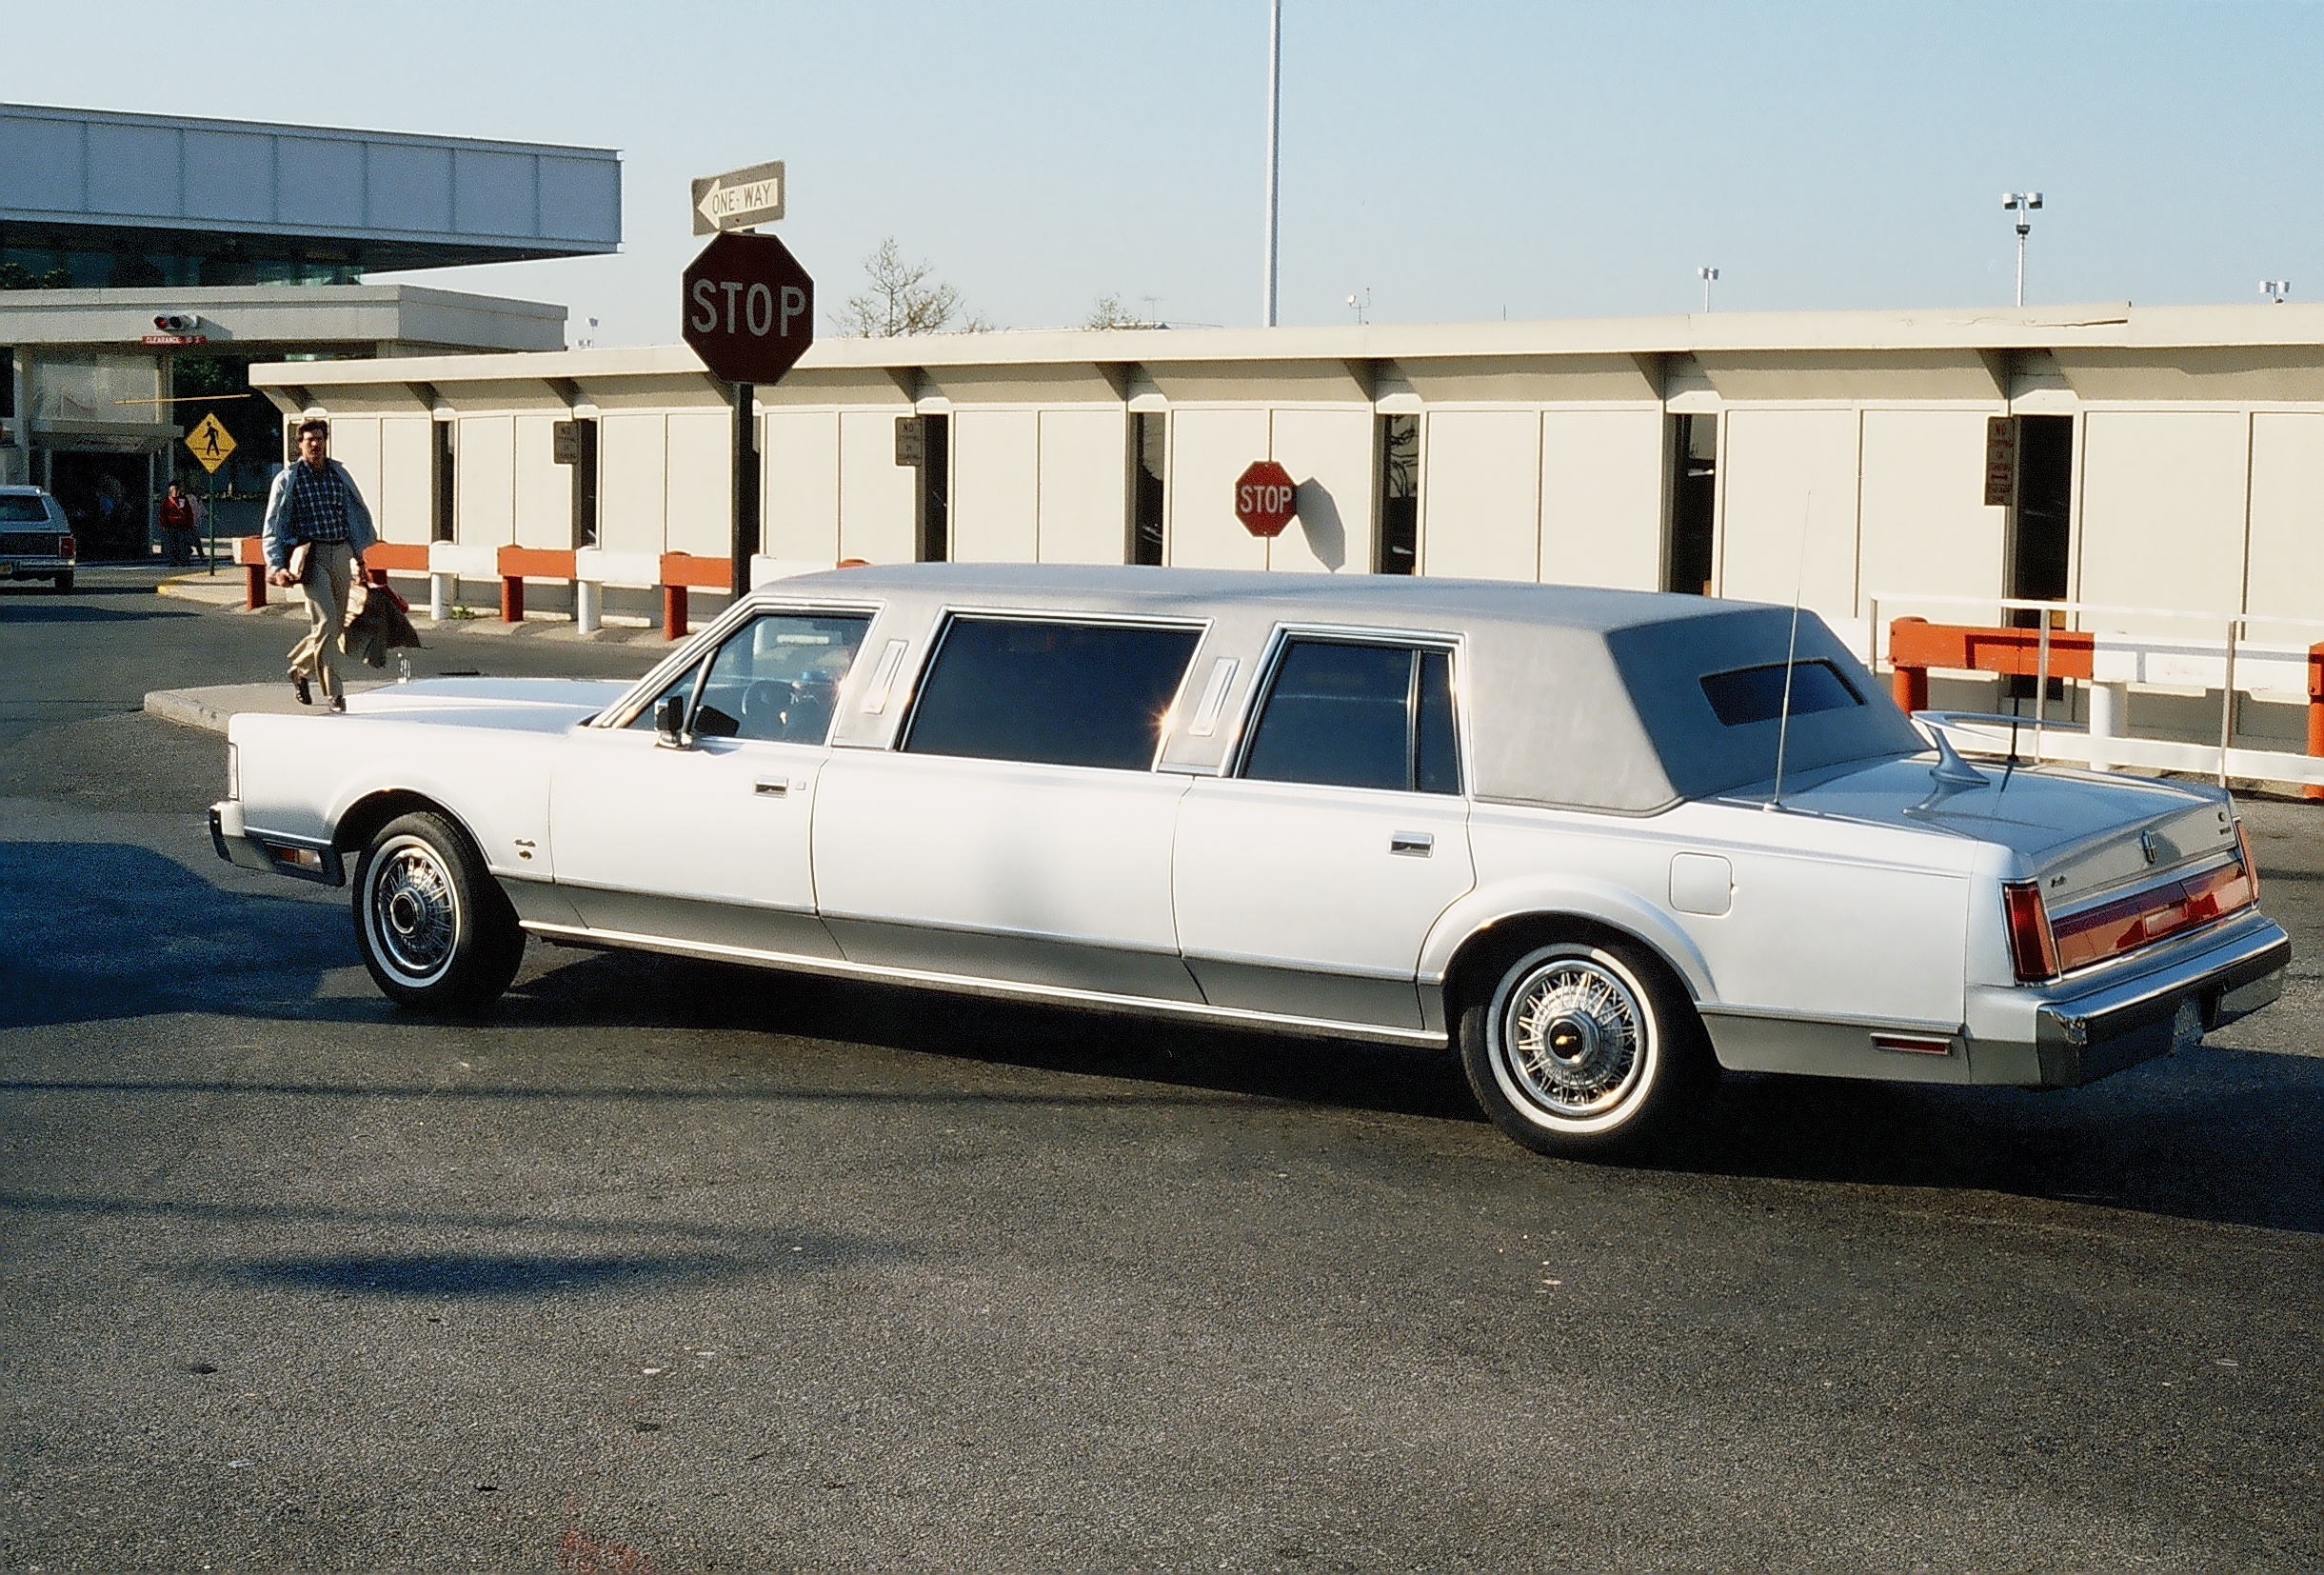 Airport Jfk Limousine Service File:limousine At Jfk Airport.jpg - Wikimedia Commons